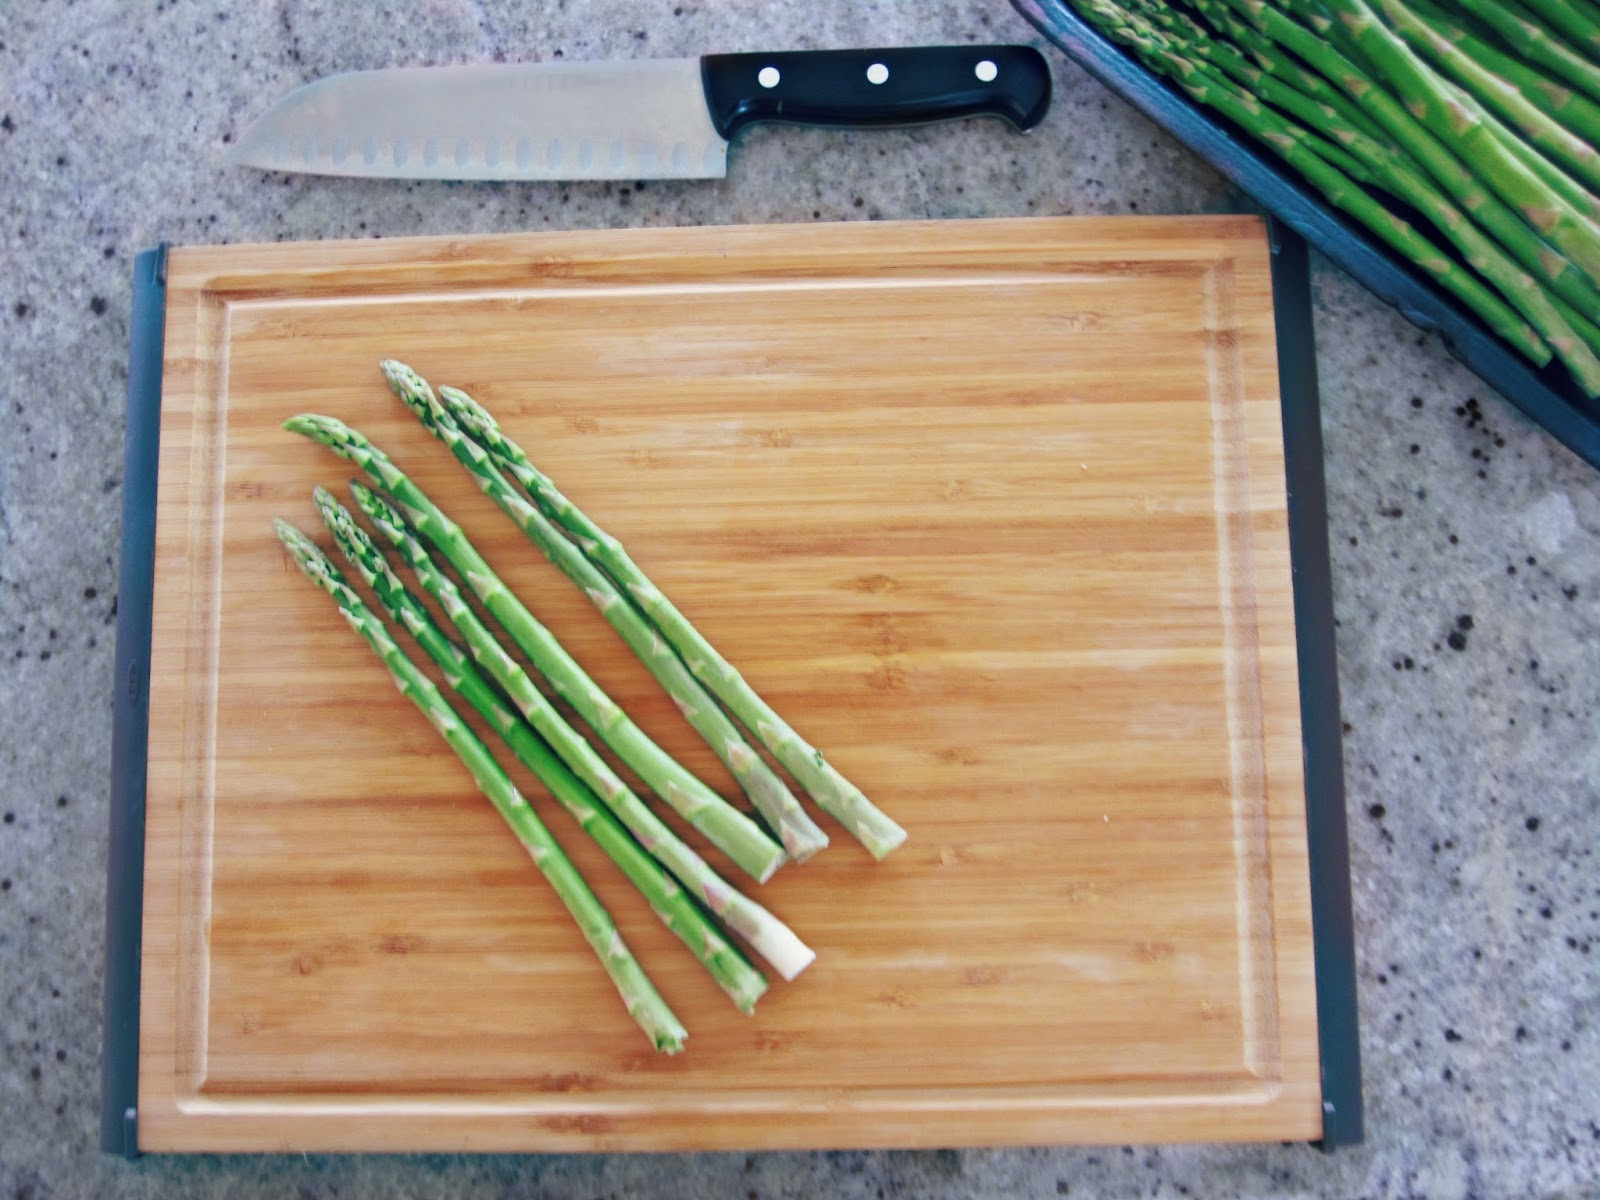 Savory Roasted Asparagus, Roasted Asparagus recipe, Spicy Asparagus, Asparagus Recipe